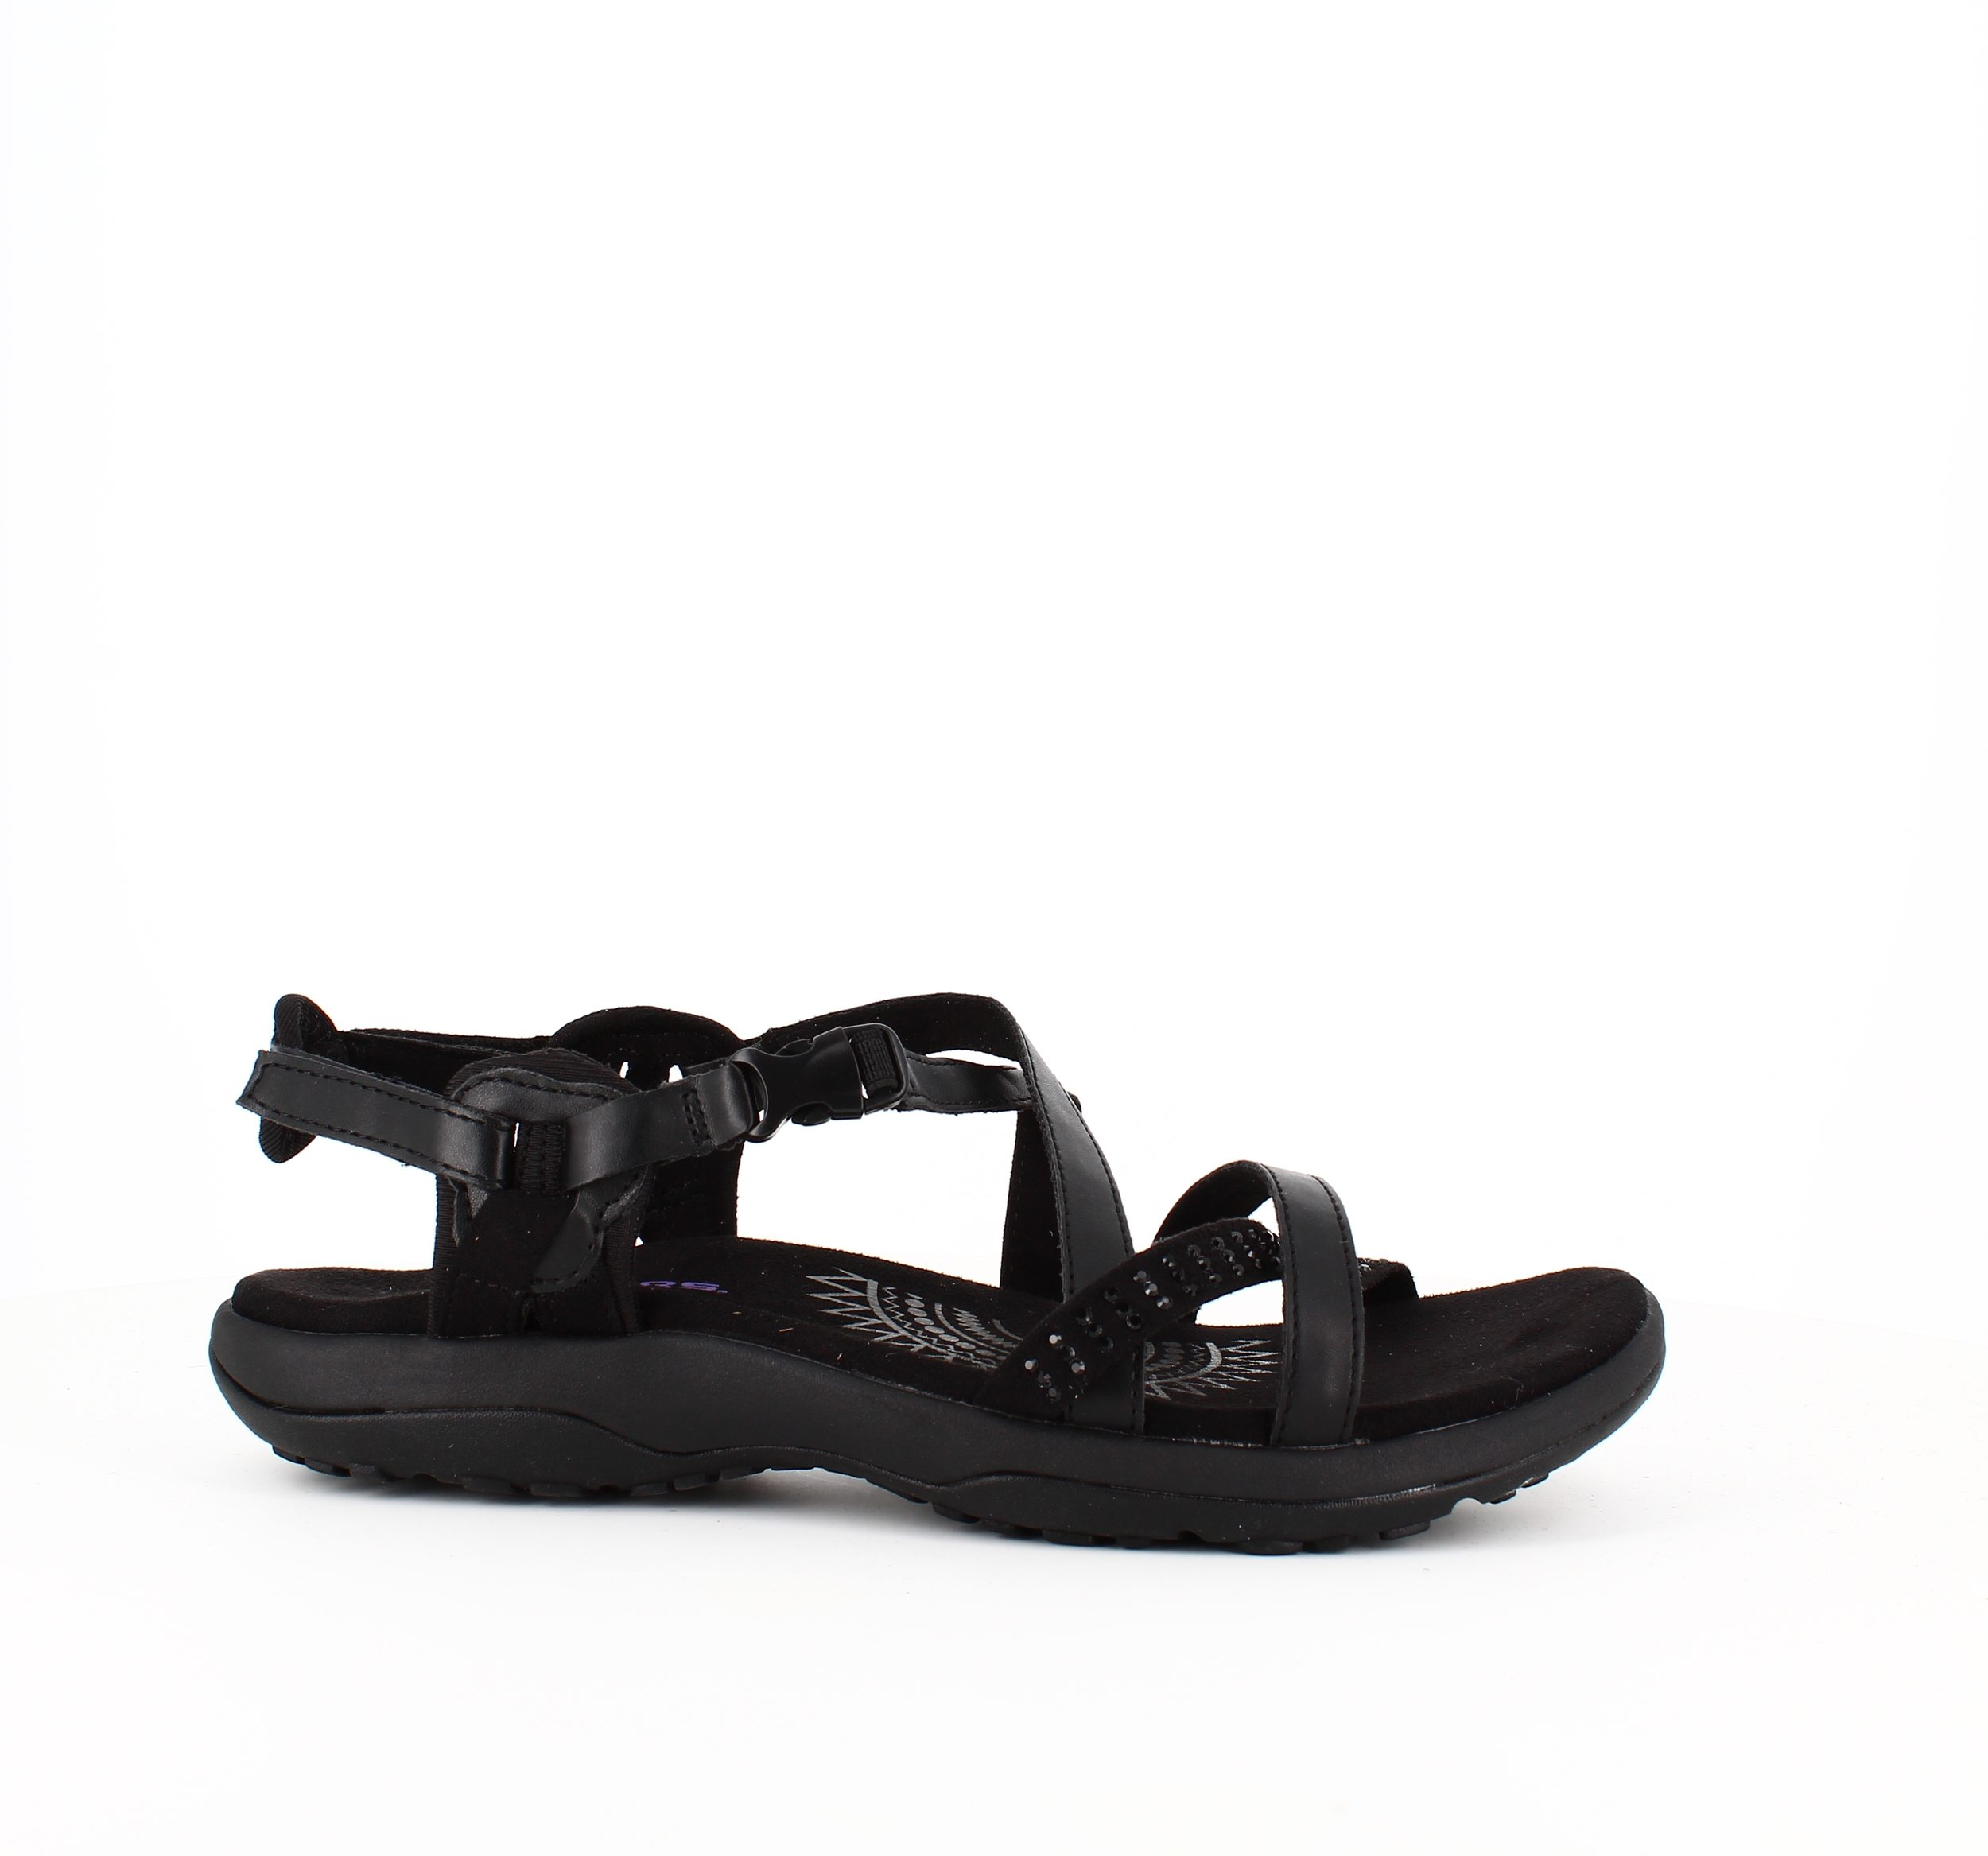 Image of   Skechers sandal i sort med smalle remme - 38